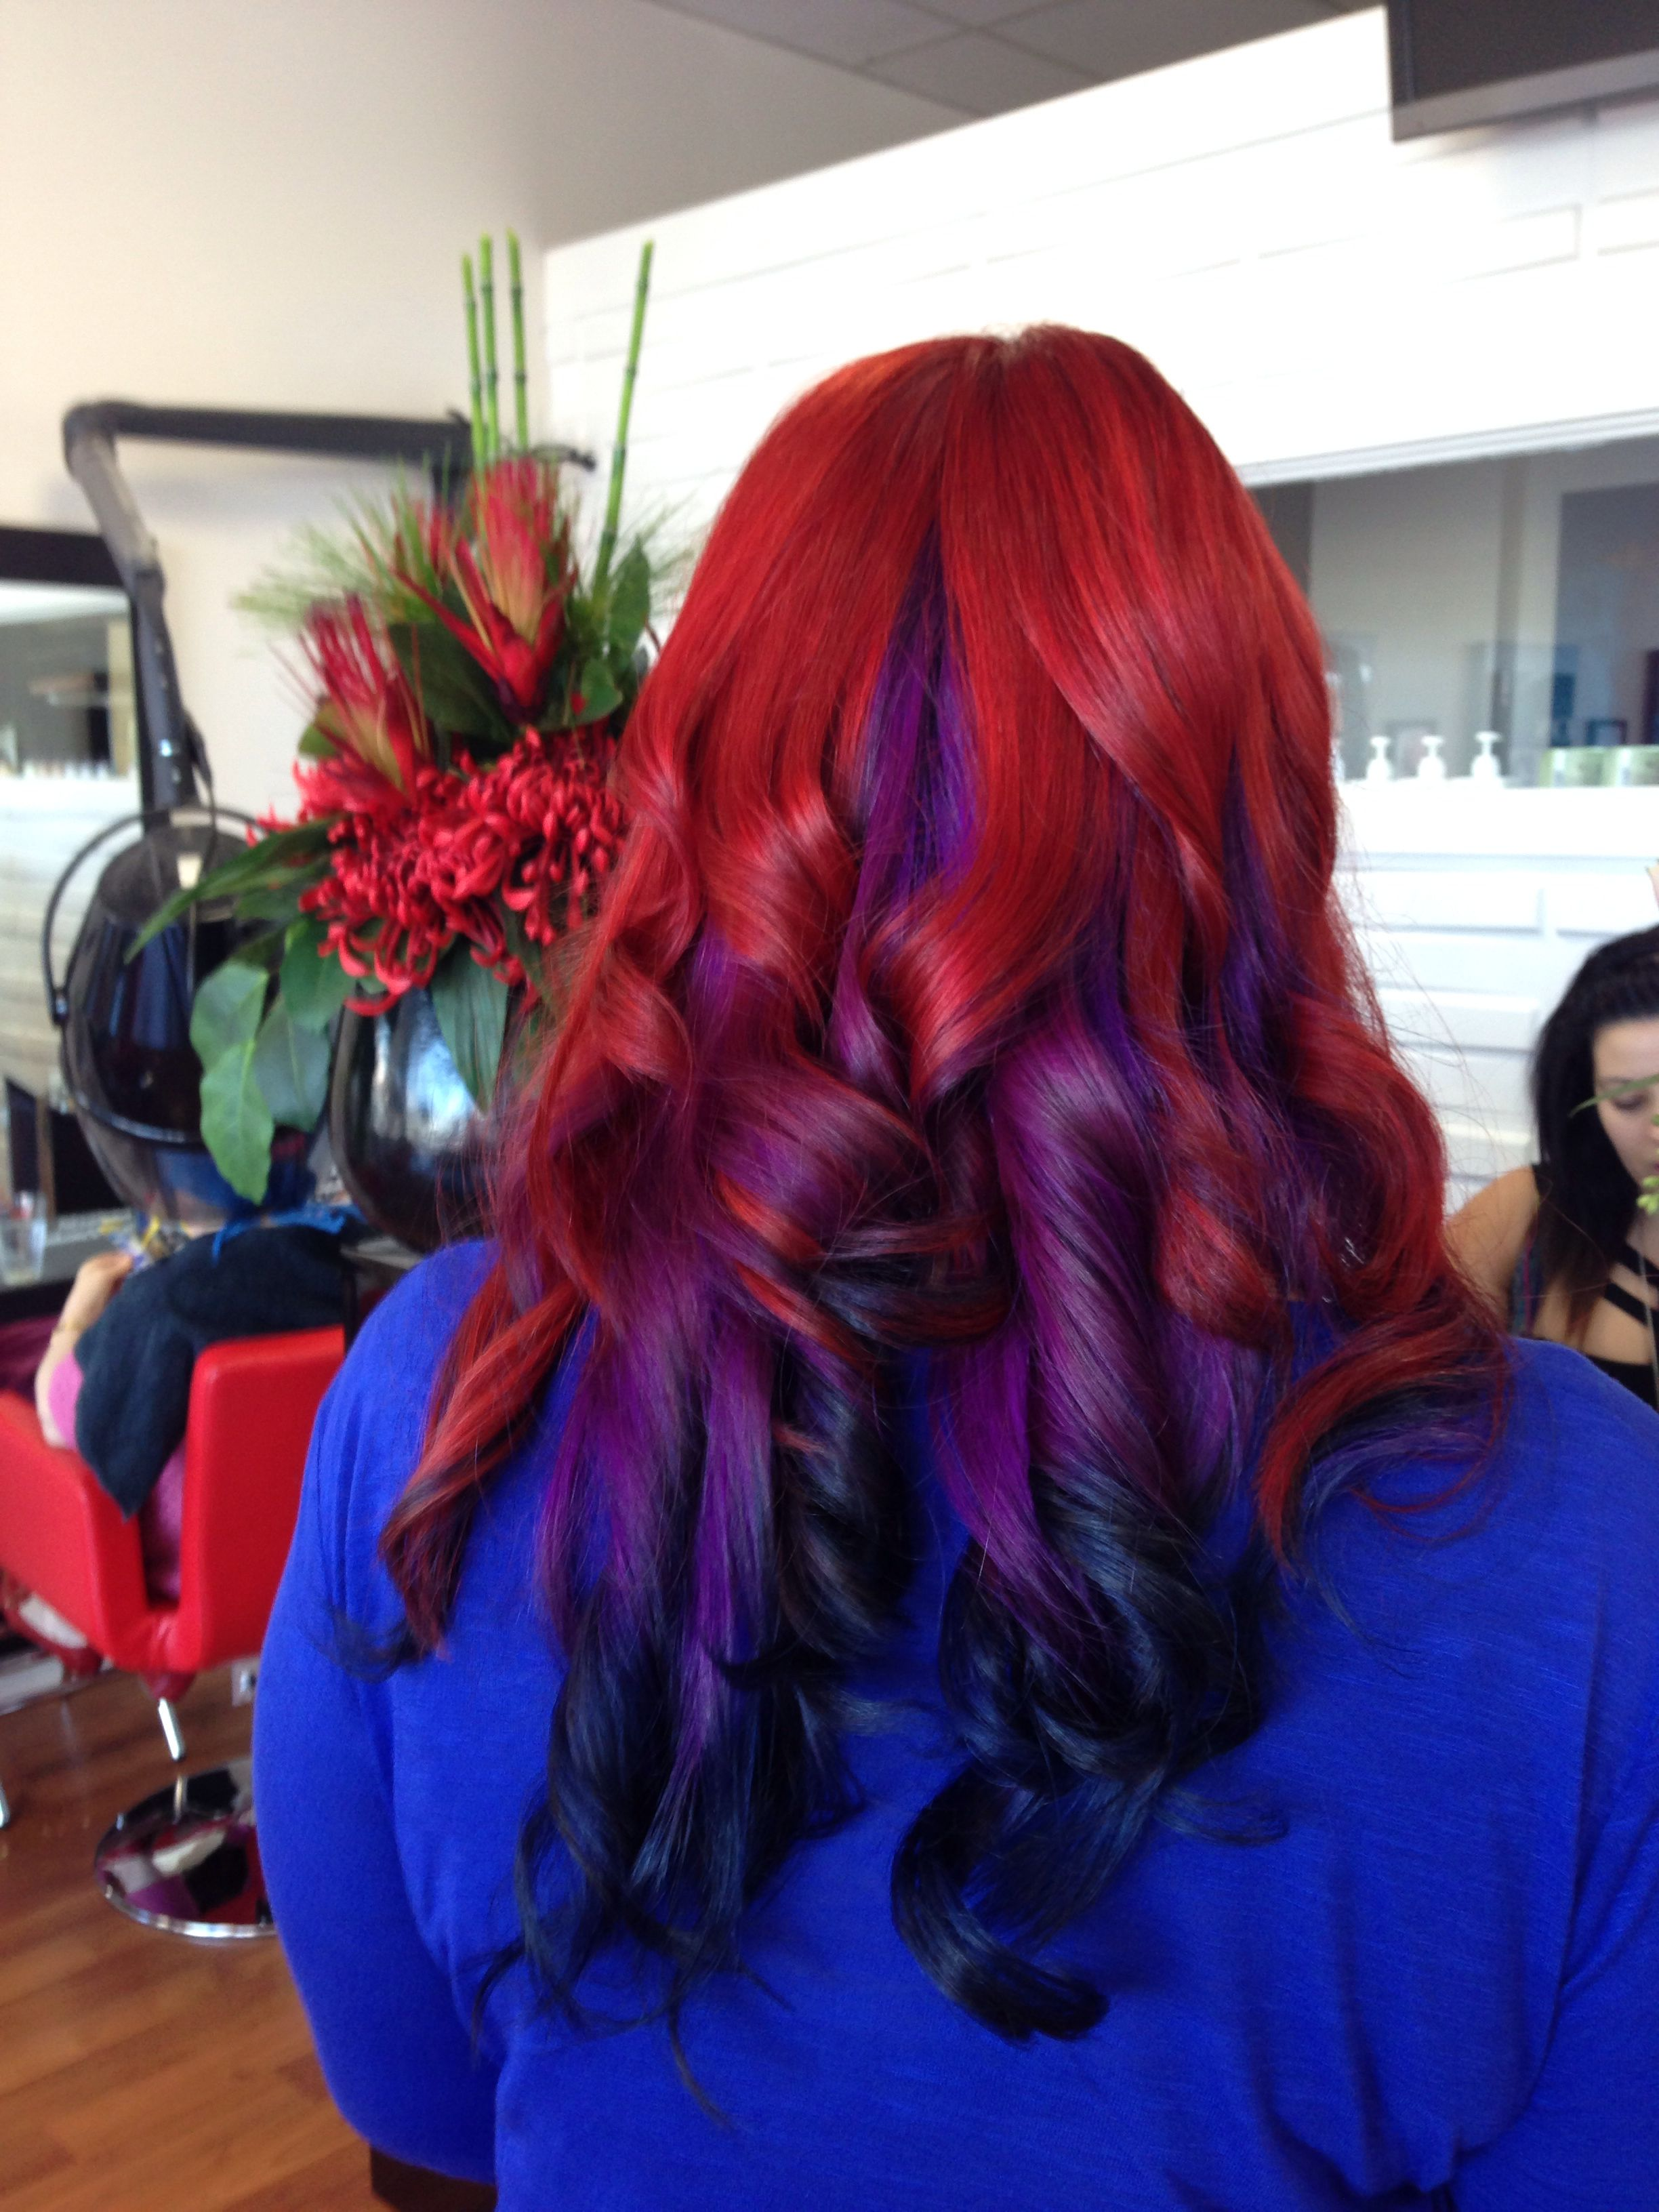 To acquire Hairstyles and red Blue pictures trends